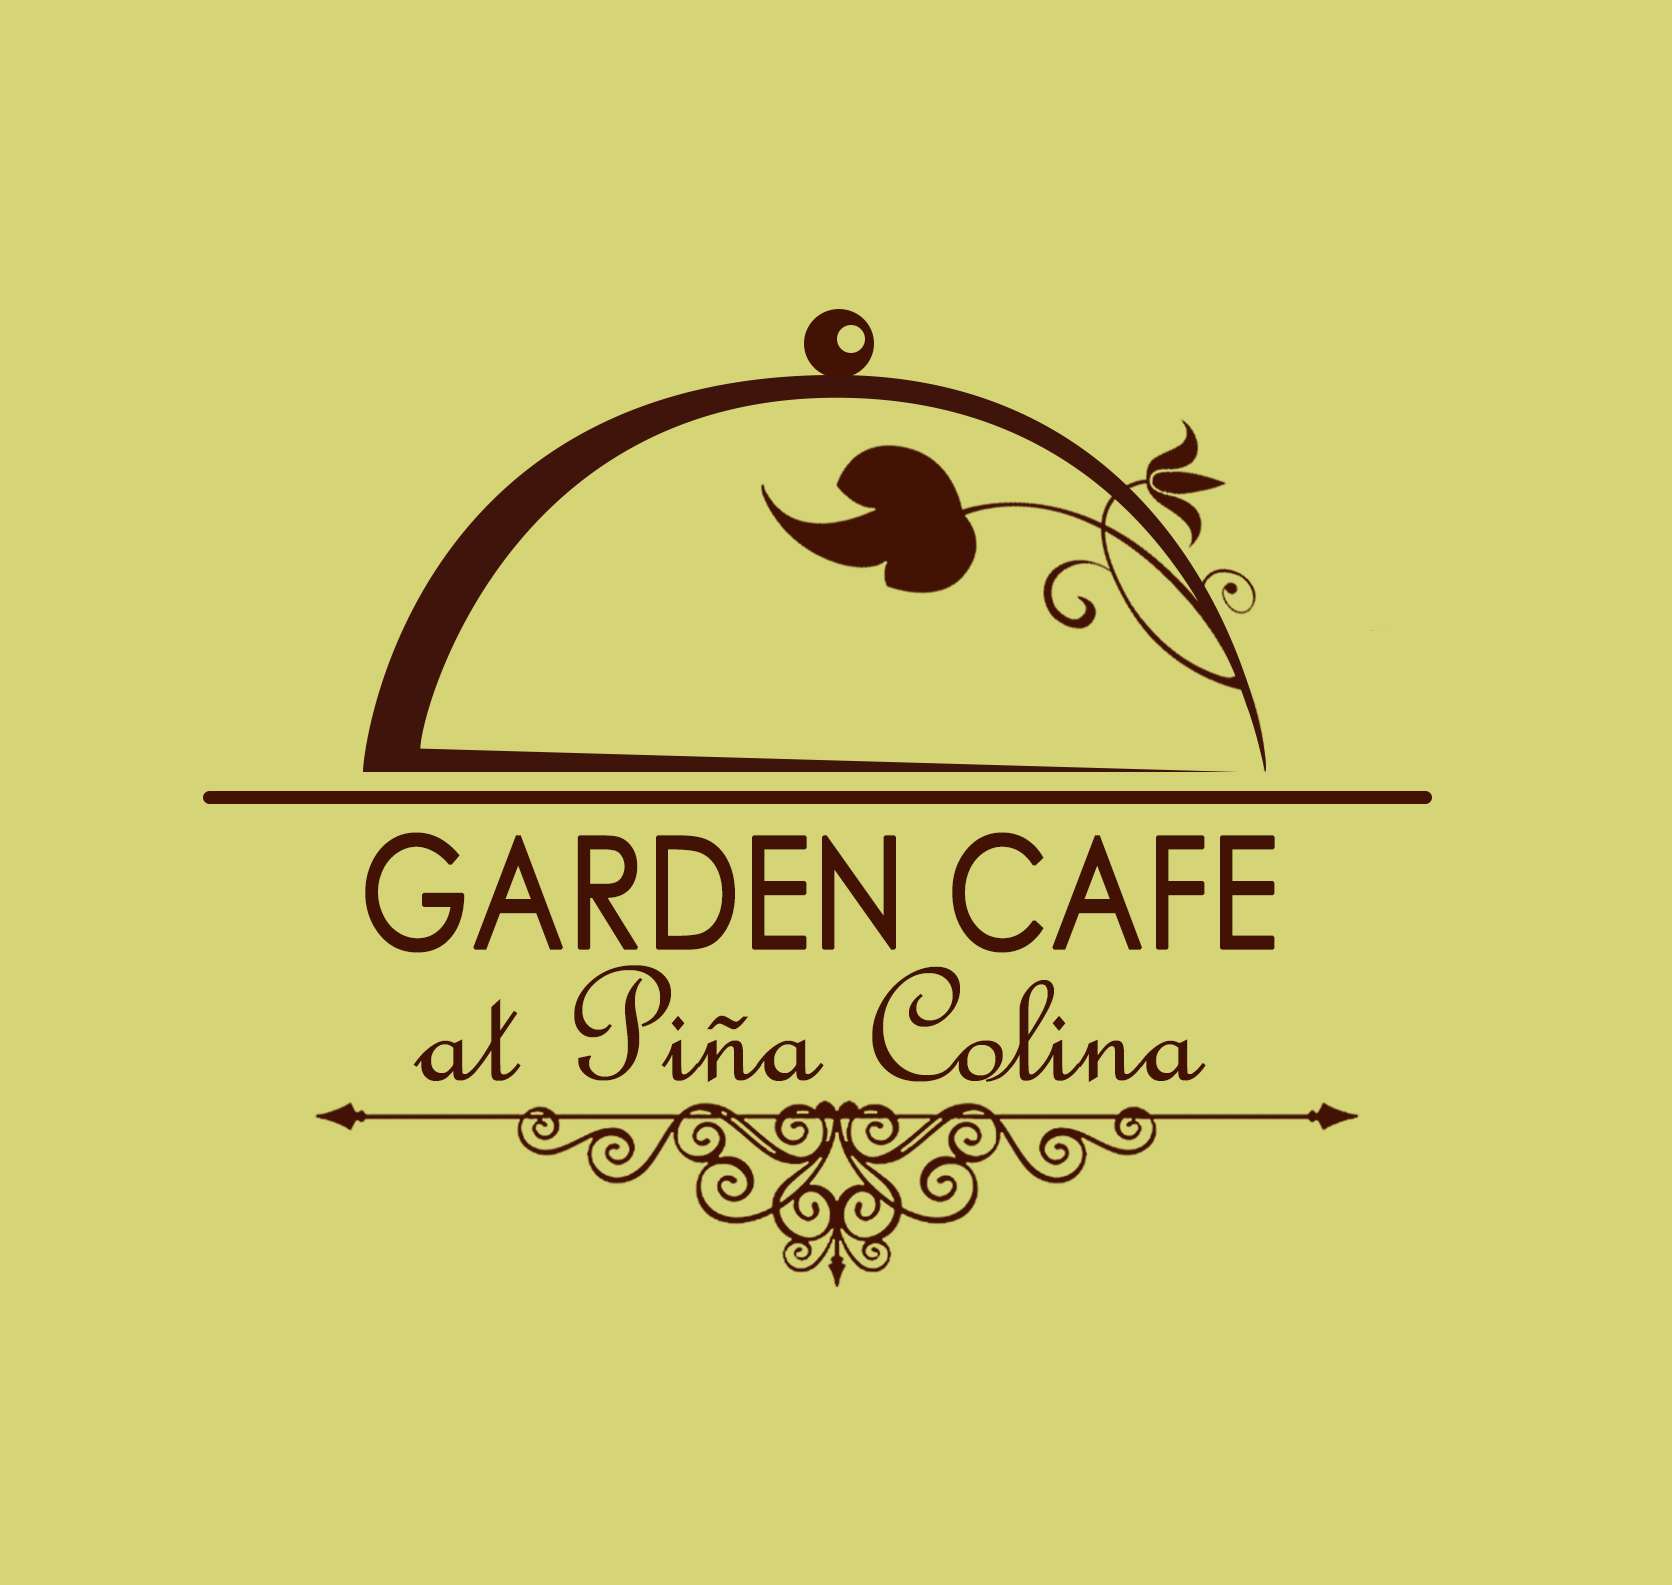 The Garden Cafe Pina Colina Resort Your Affordable Tagaytay